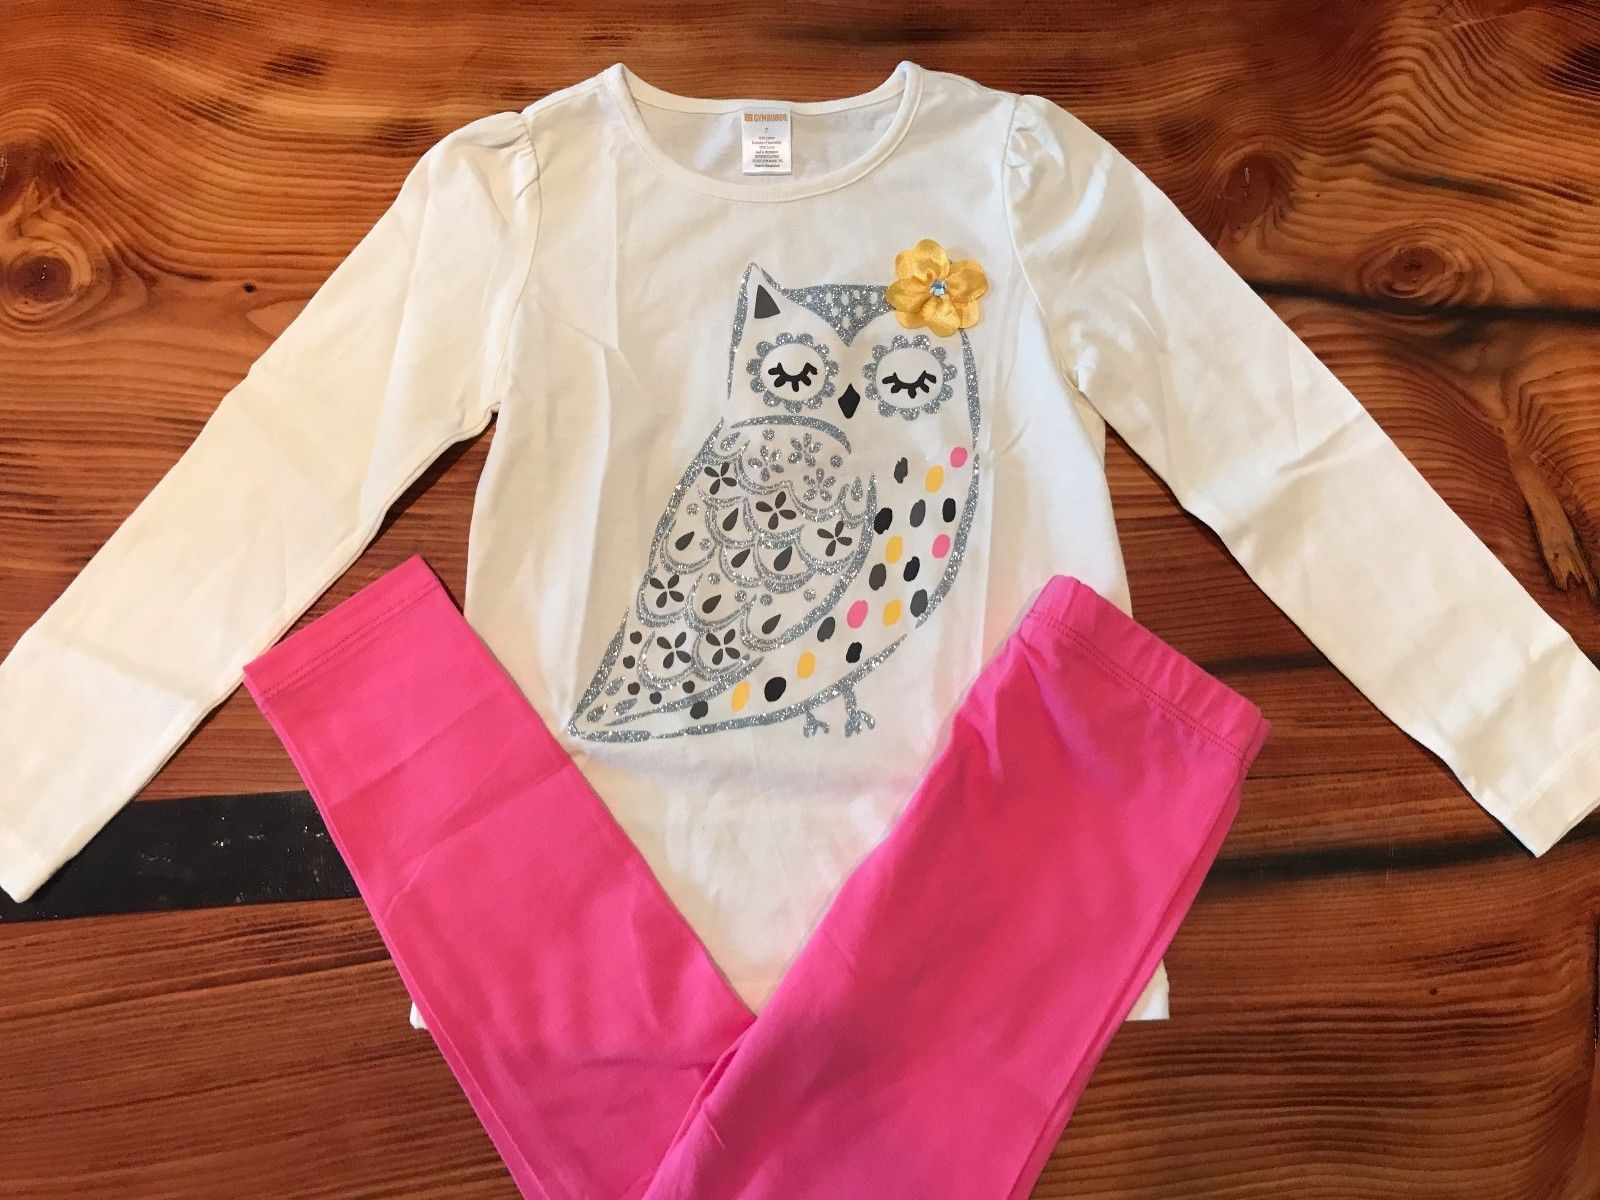 NWT Gymboree Butterfly Blossoms Daisy Flower Embroidered Tee Top U Pick Size NEW